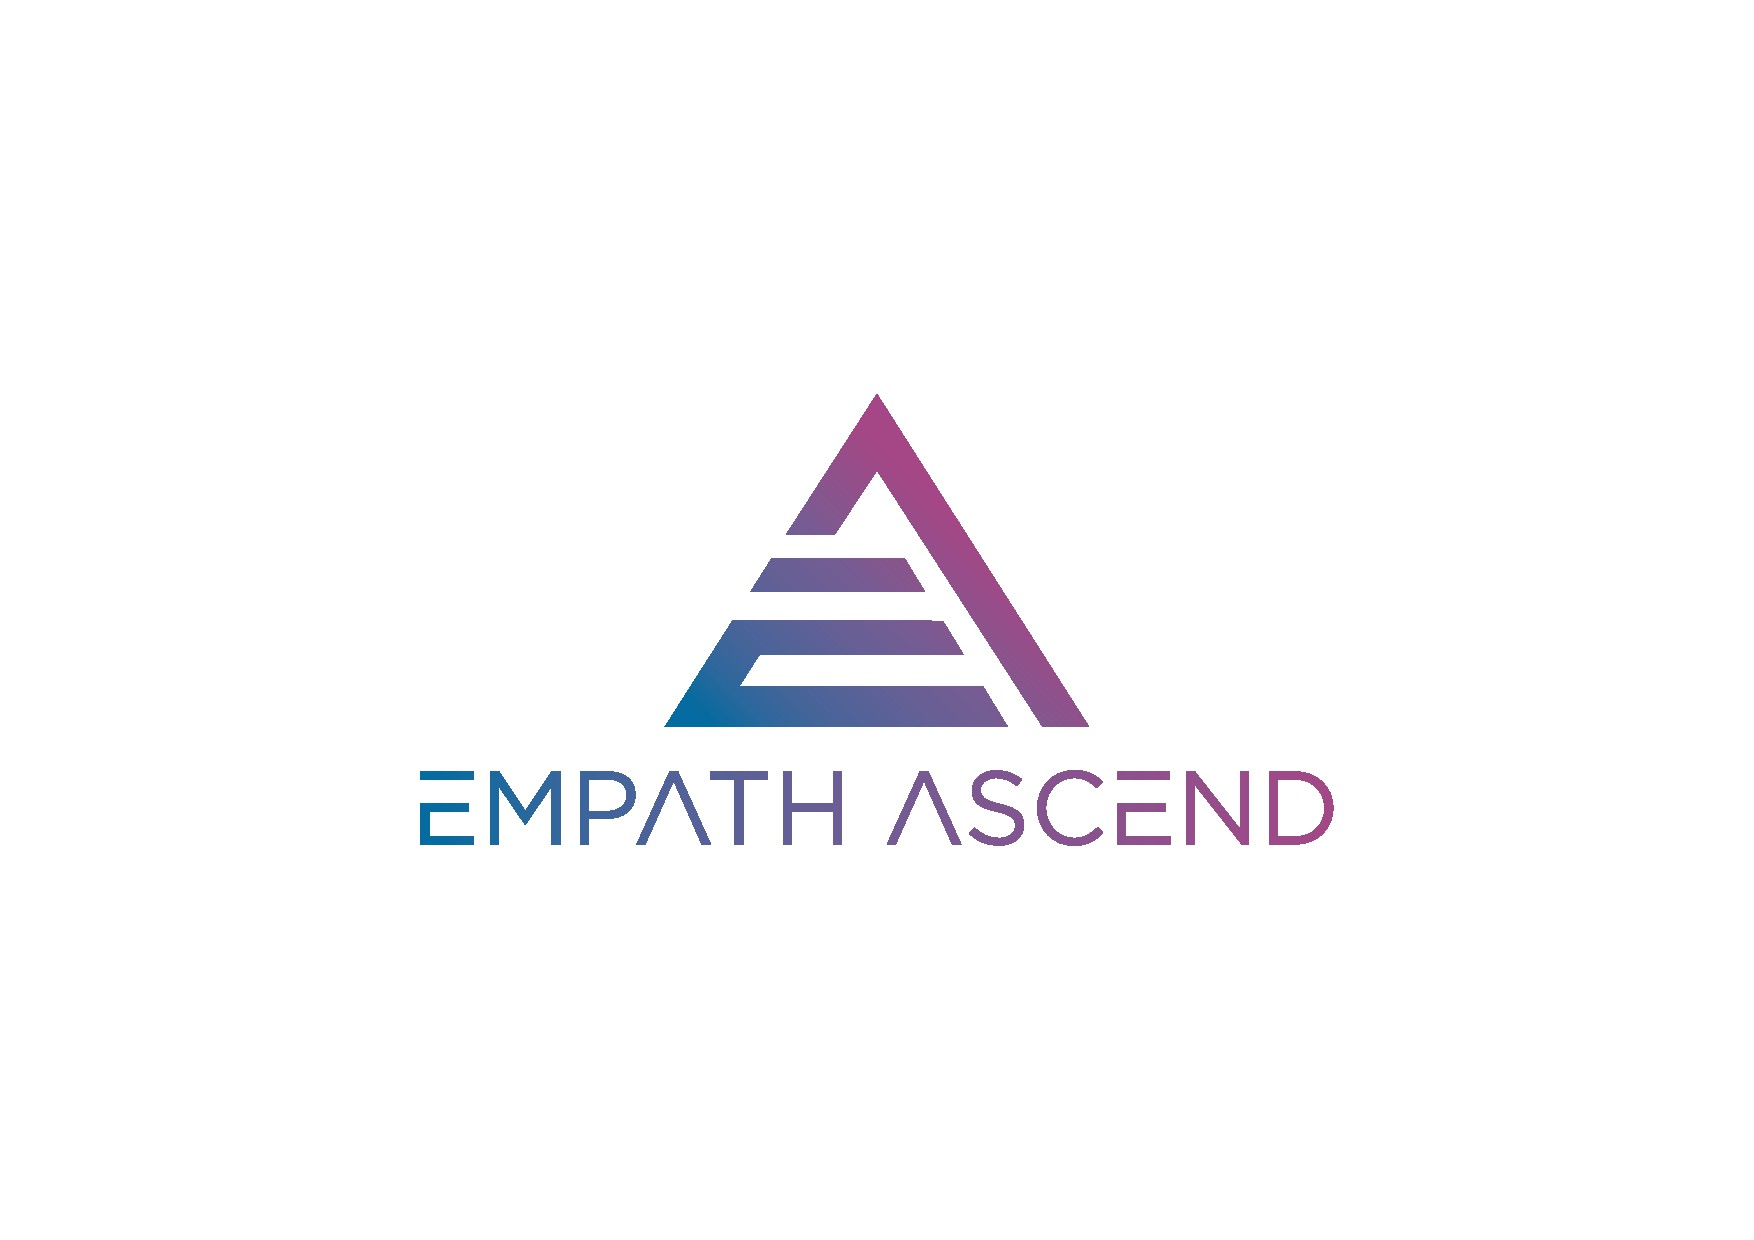 Empath Ascend needs a modern and clean logo.